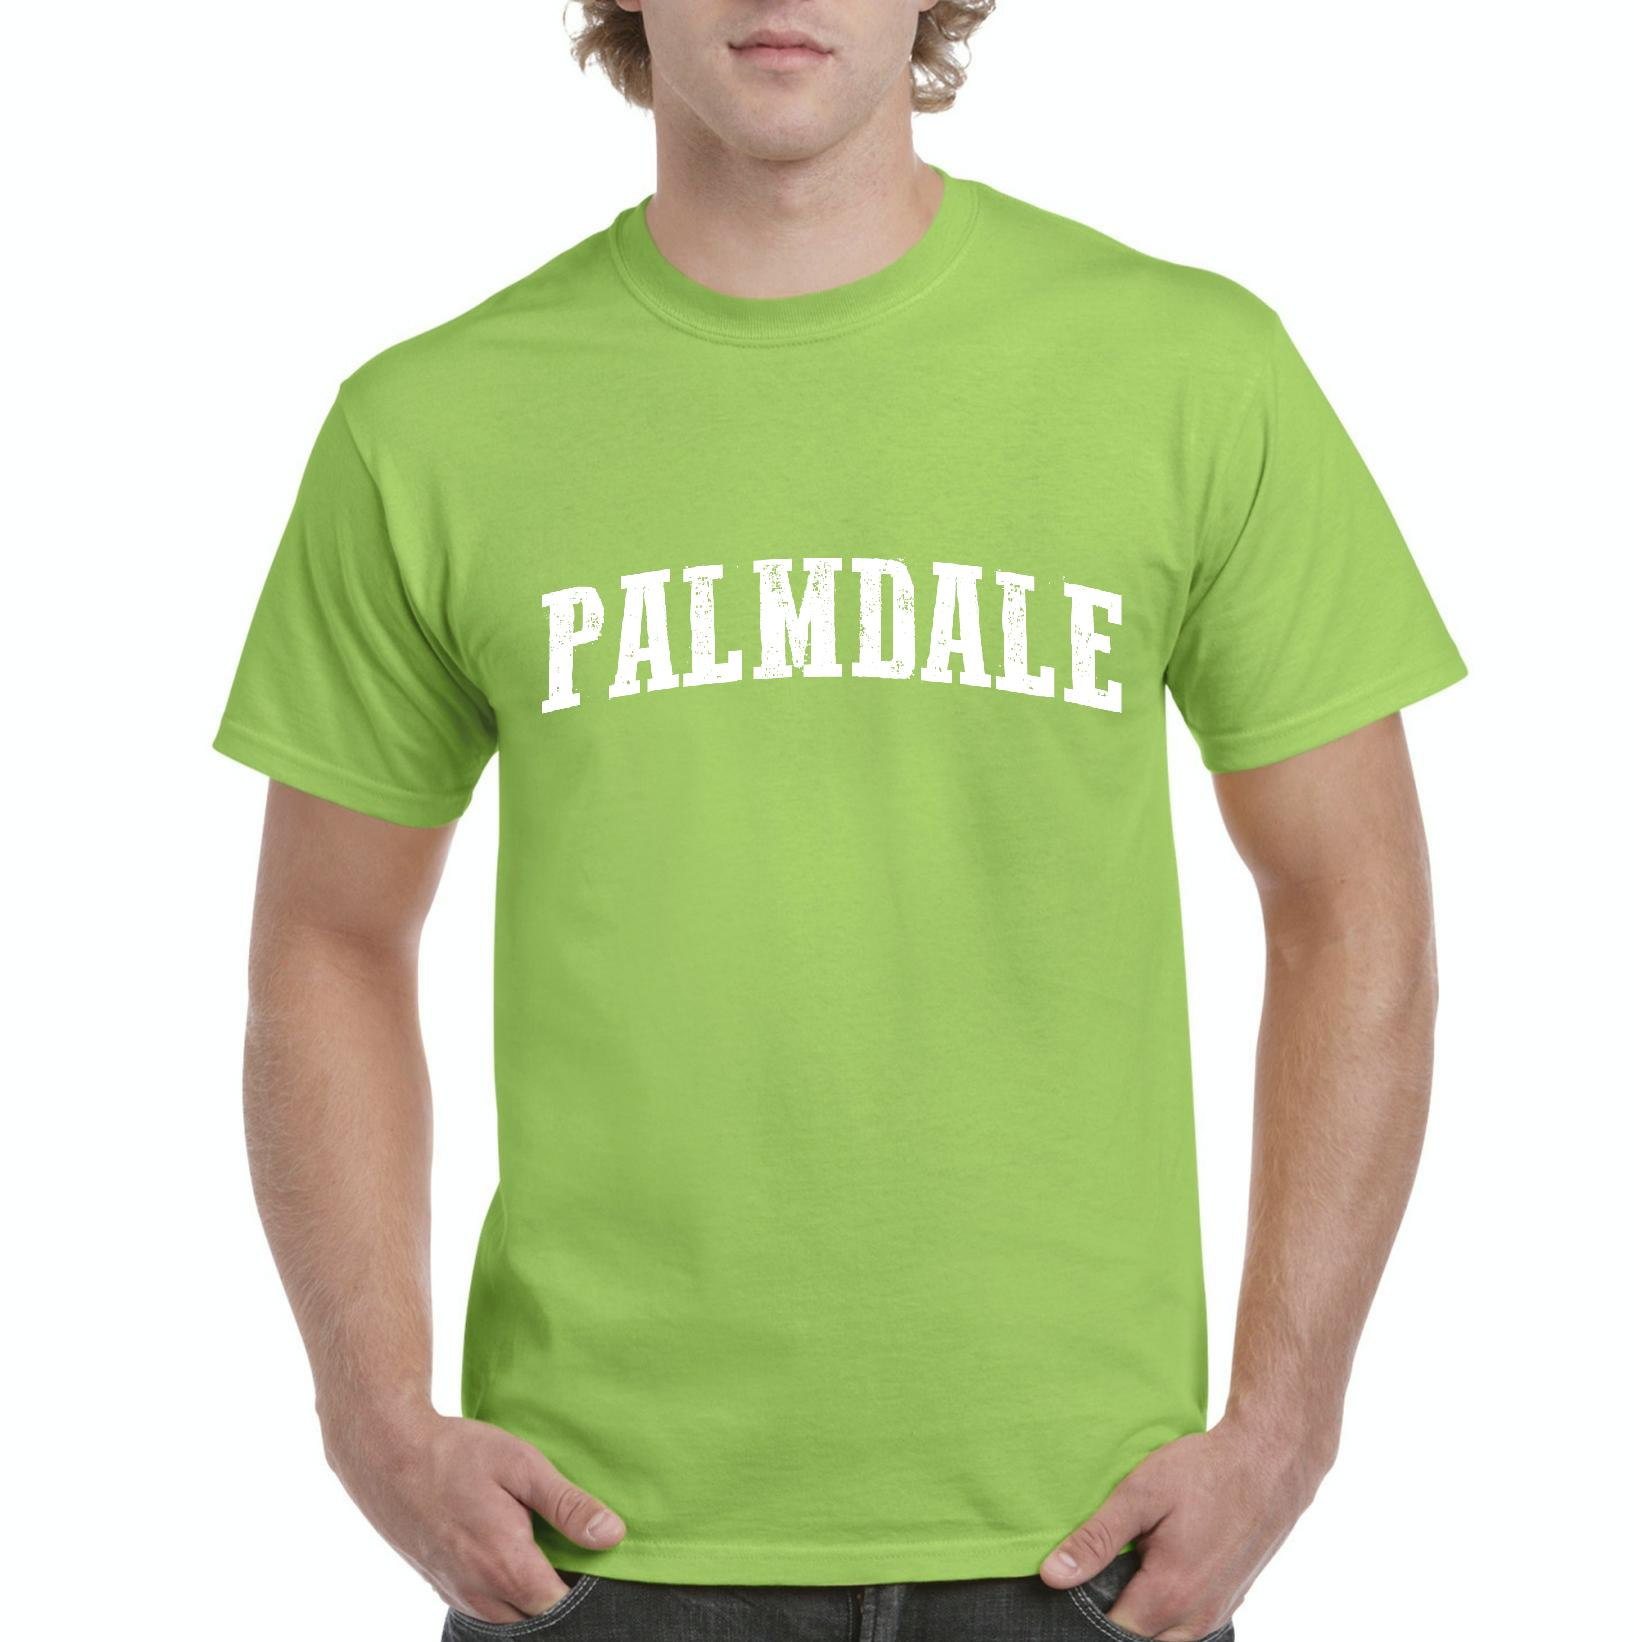 Clothing Stores In Palmdale Ca